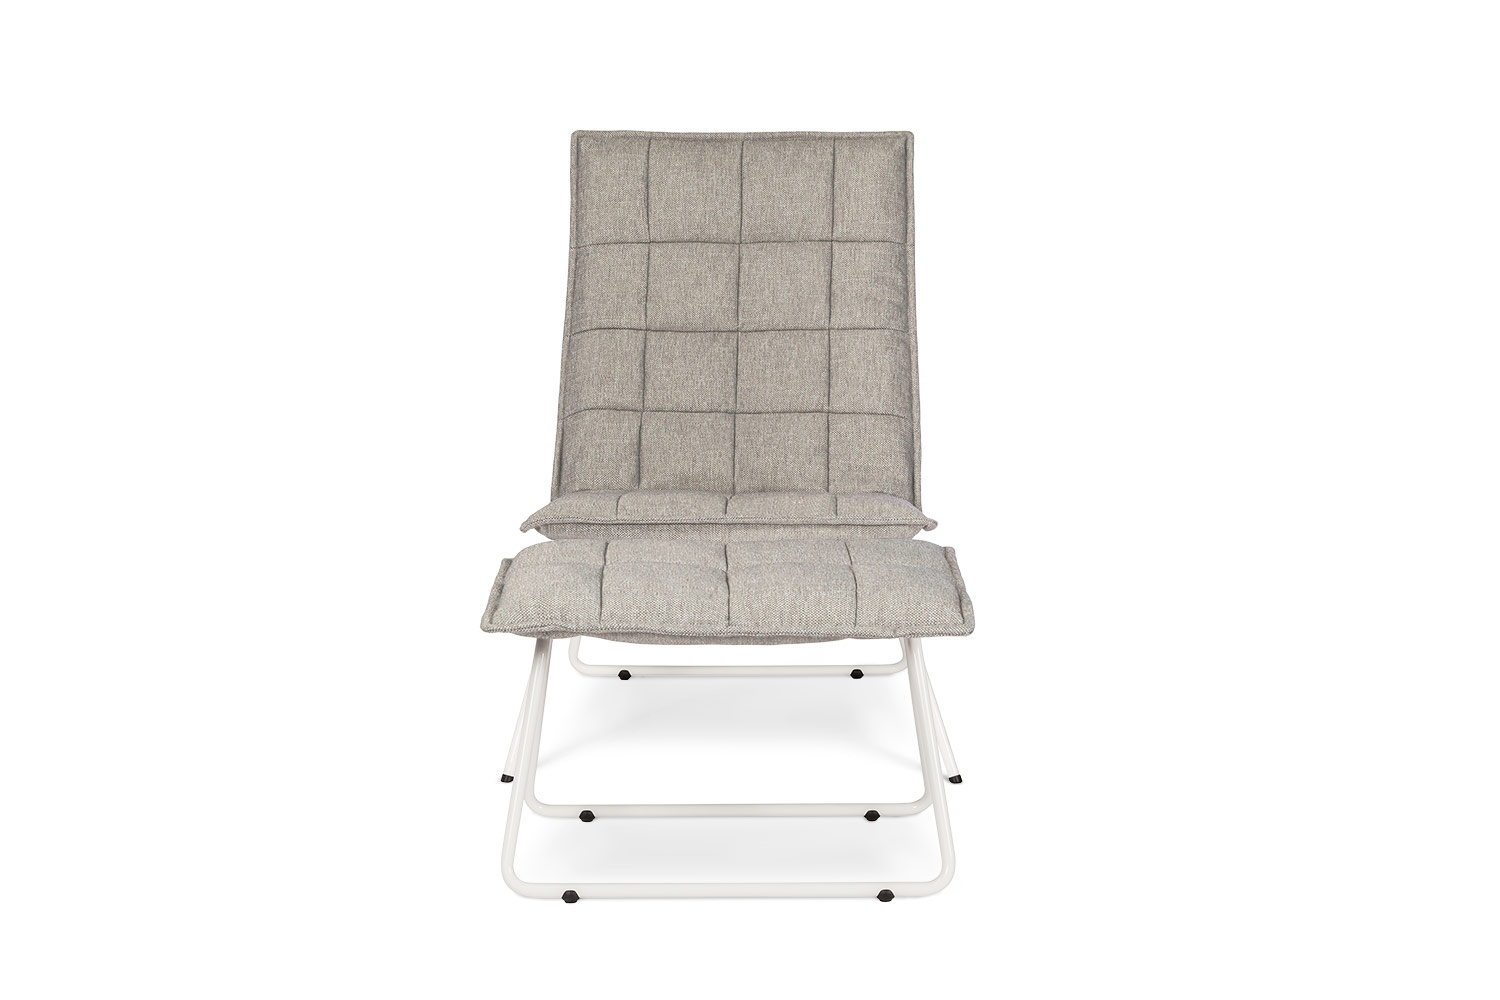 In picture Ibis with footstool; fabric: Solution 60; leg: white.